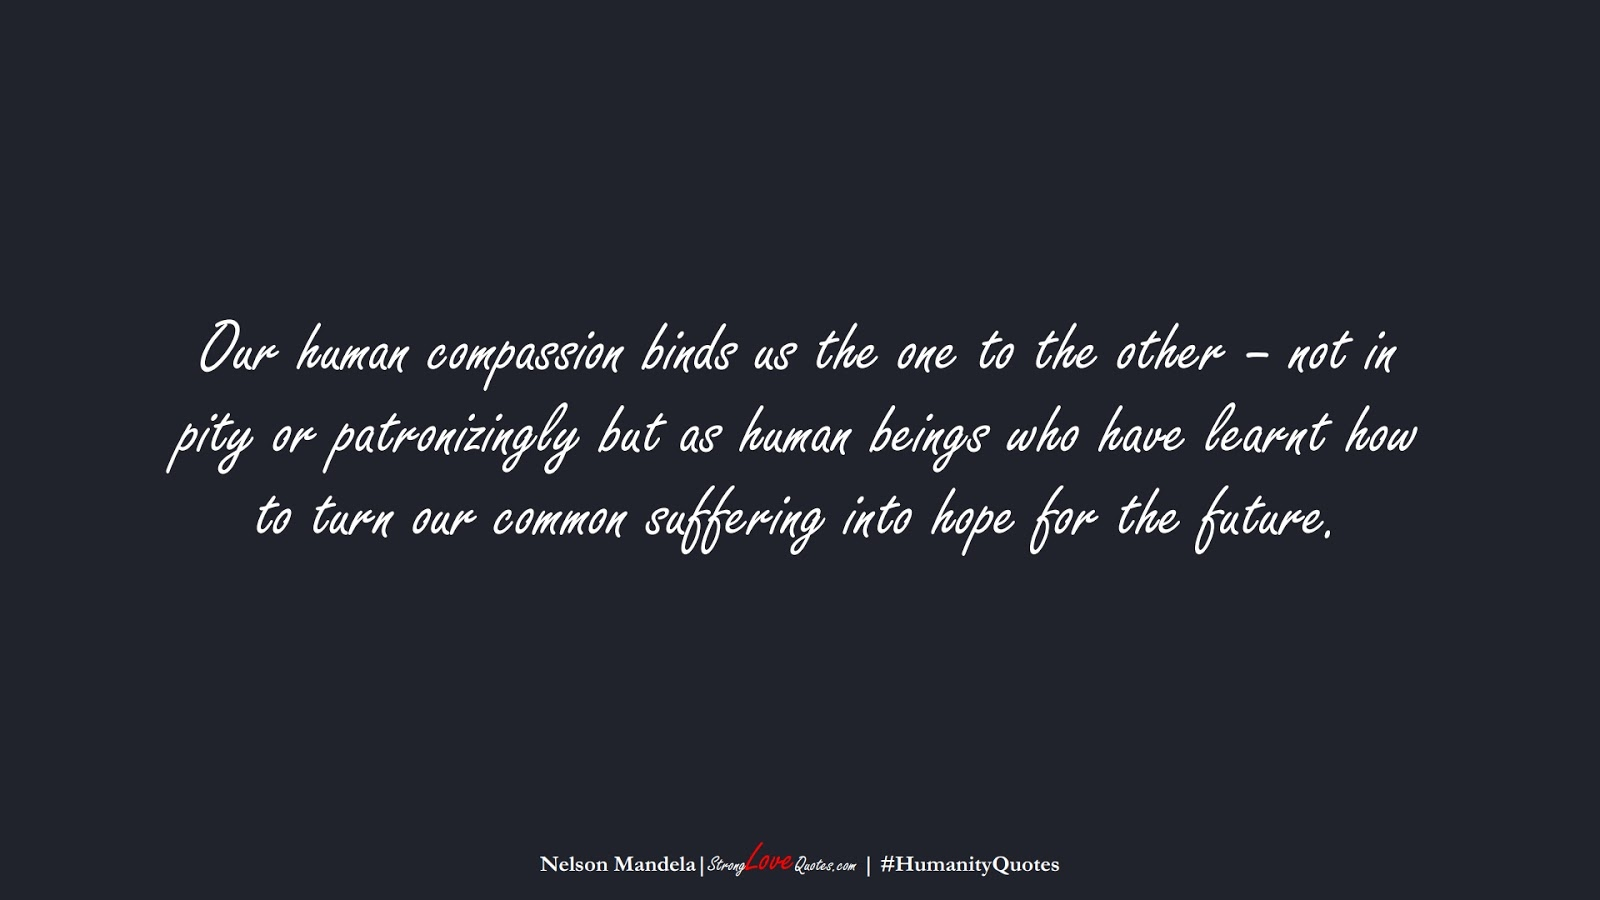 Our human compassion binds us the one to the other – not in pity or patronizingly but as human beings who have learnt how to turn our common suffering into hope for the future. (Nelson Mandela);  #HumanityQuotes